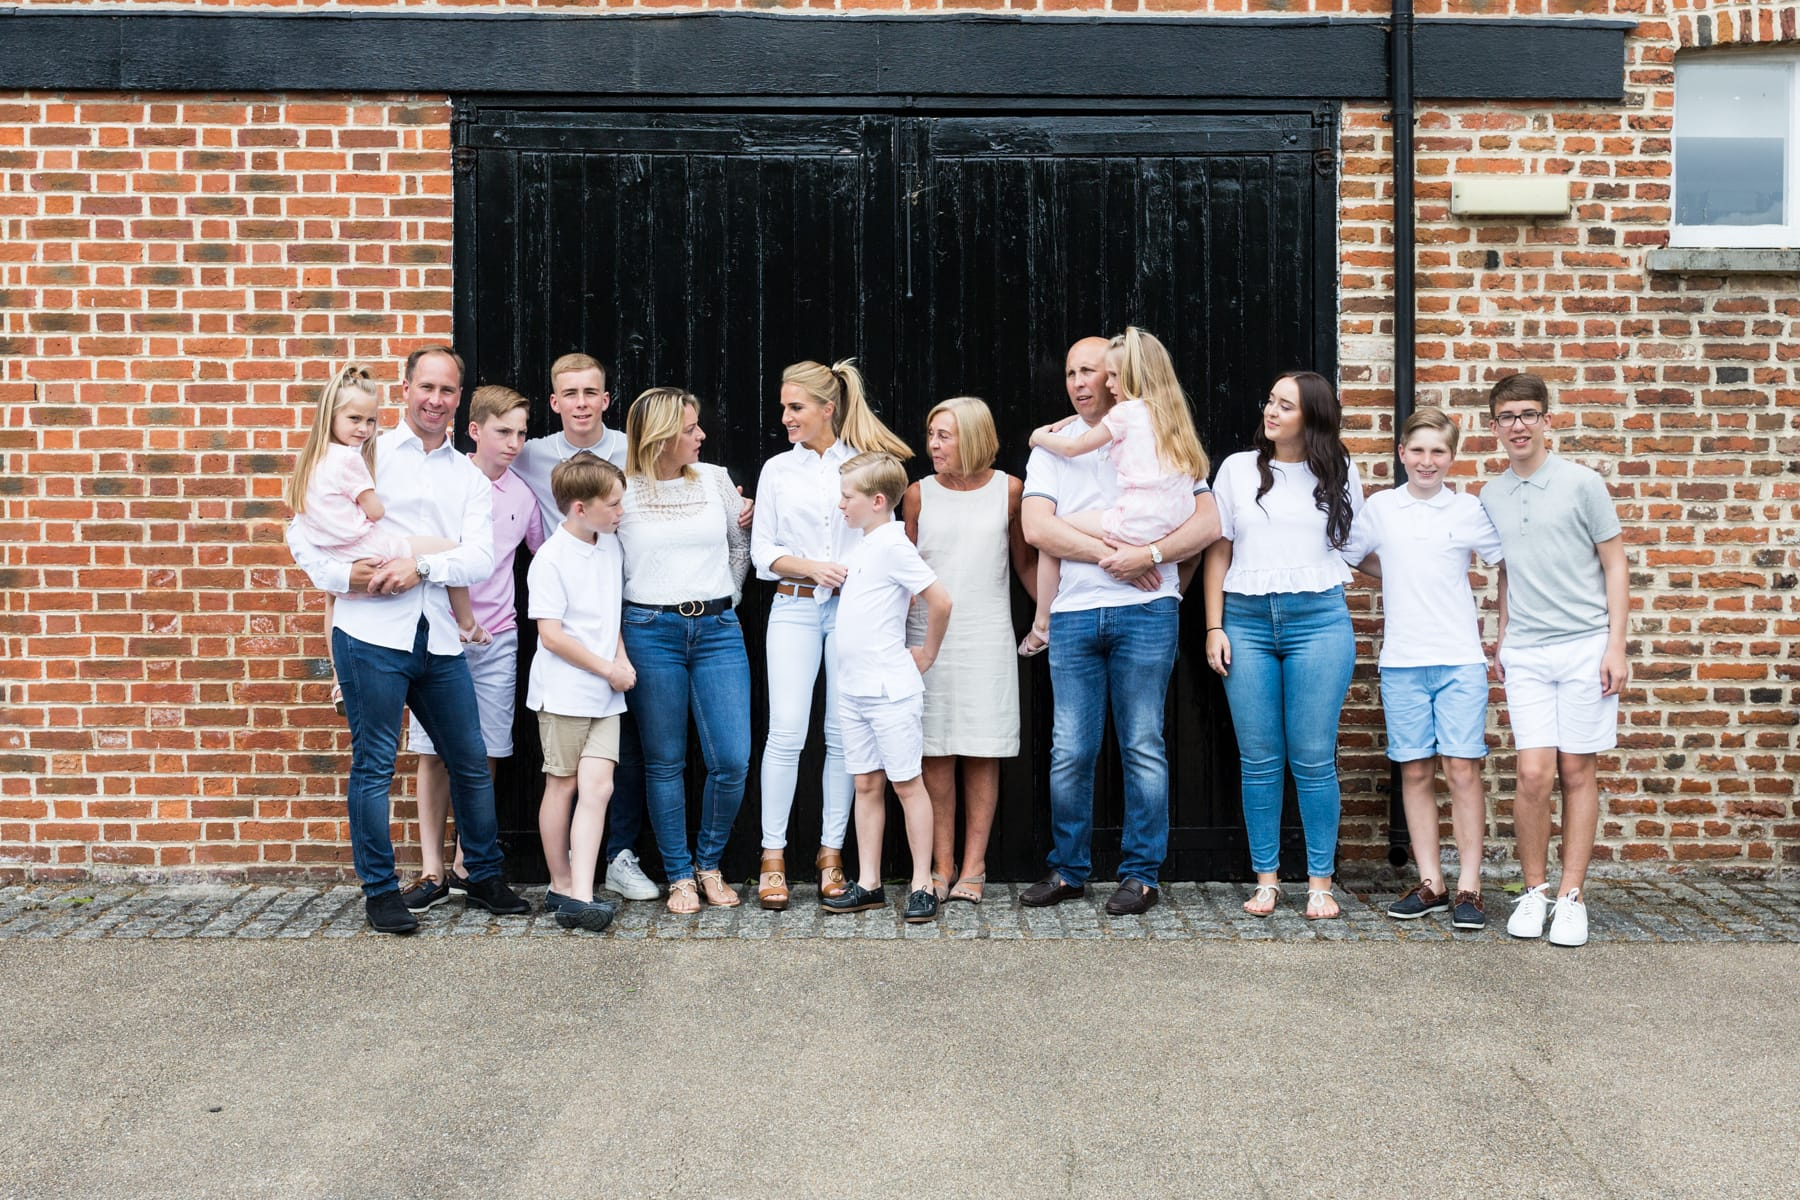 Bexley extended family shoot at Hall Place Bexley 2019